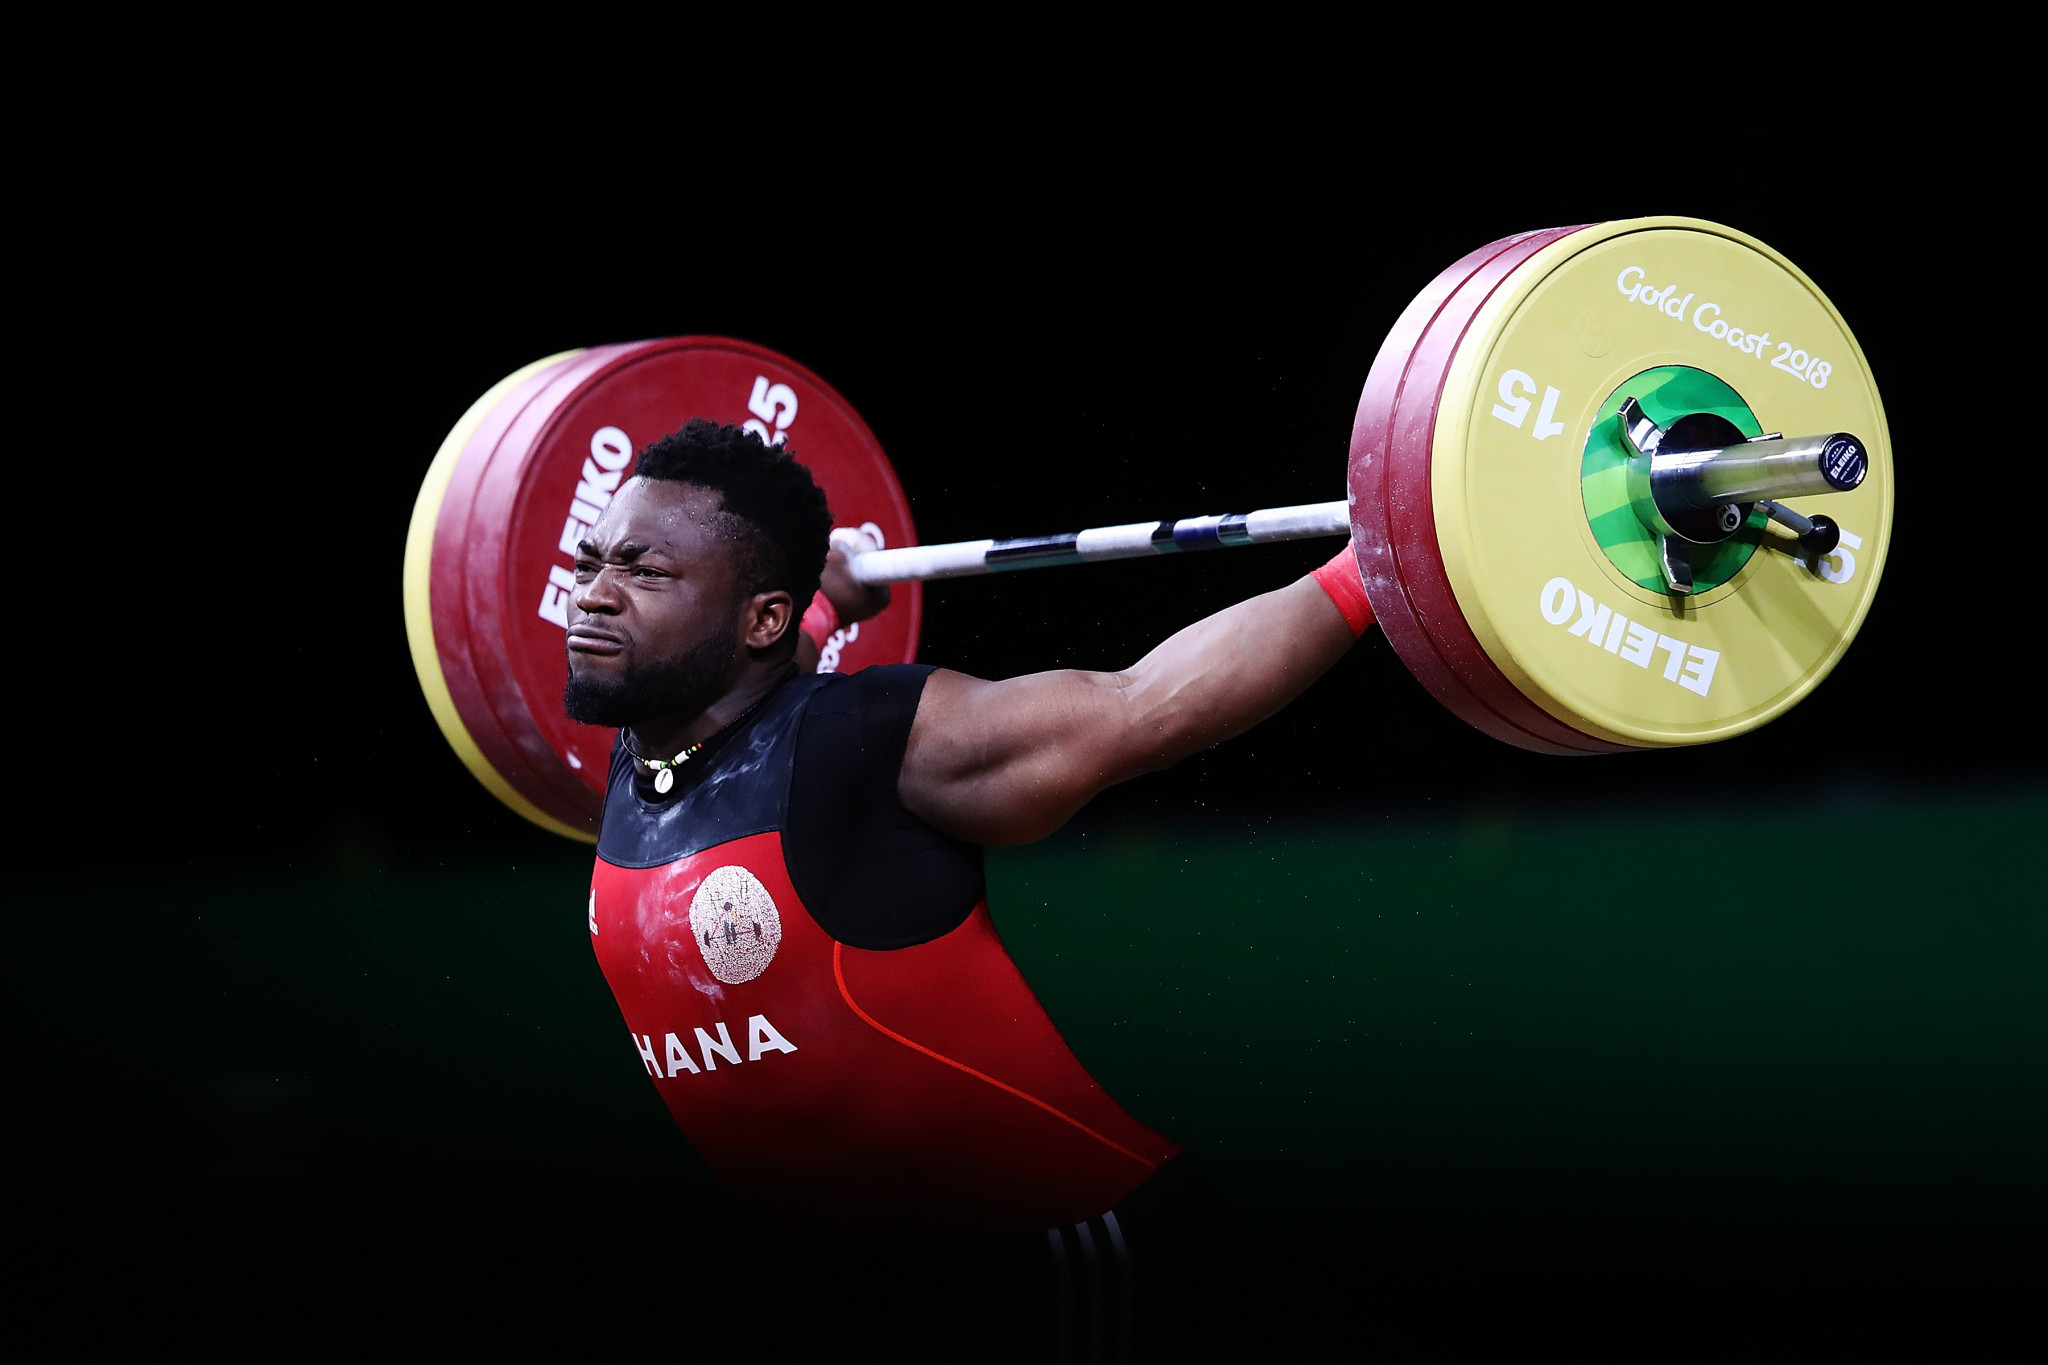 London-based Ghanaian weightlifter Forrester Osei is among those set to face a complicated and expensive journey to Madagascar and back ©Getty Images